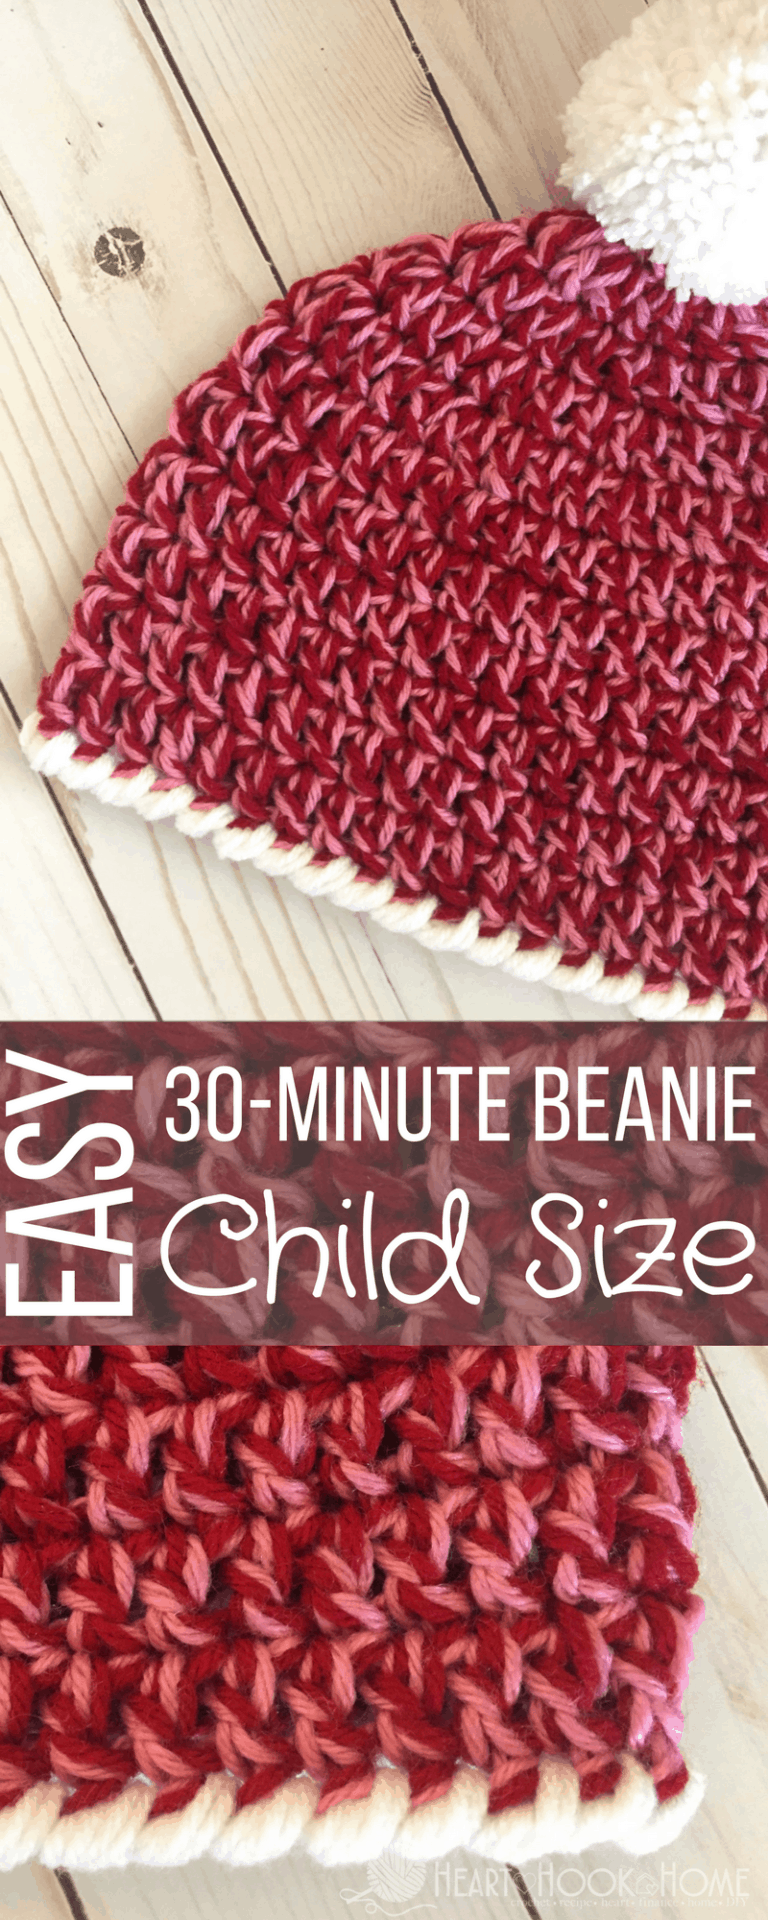 Child Size Easy Peasy 30-Minute Beanie Free Crochet Pattern ba9ec972d2a